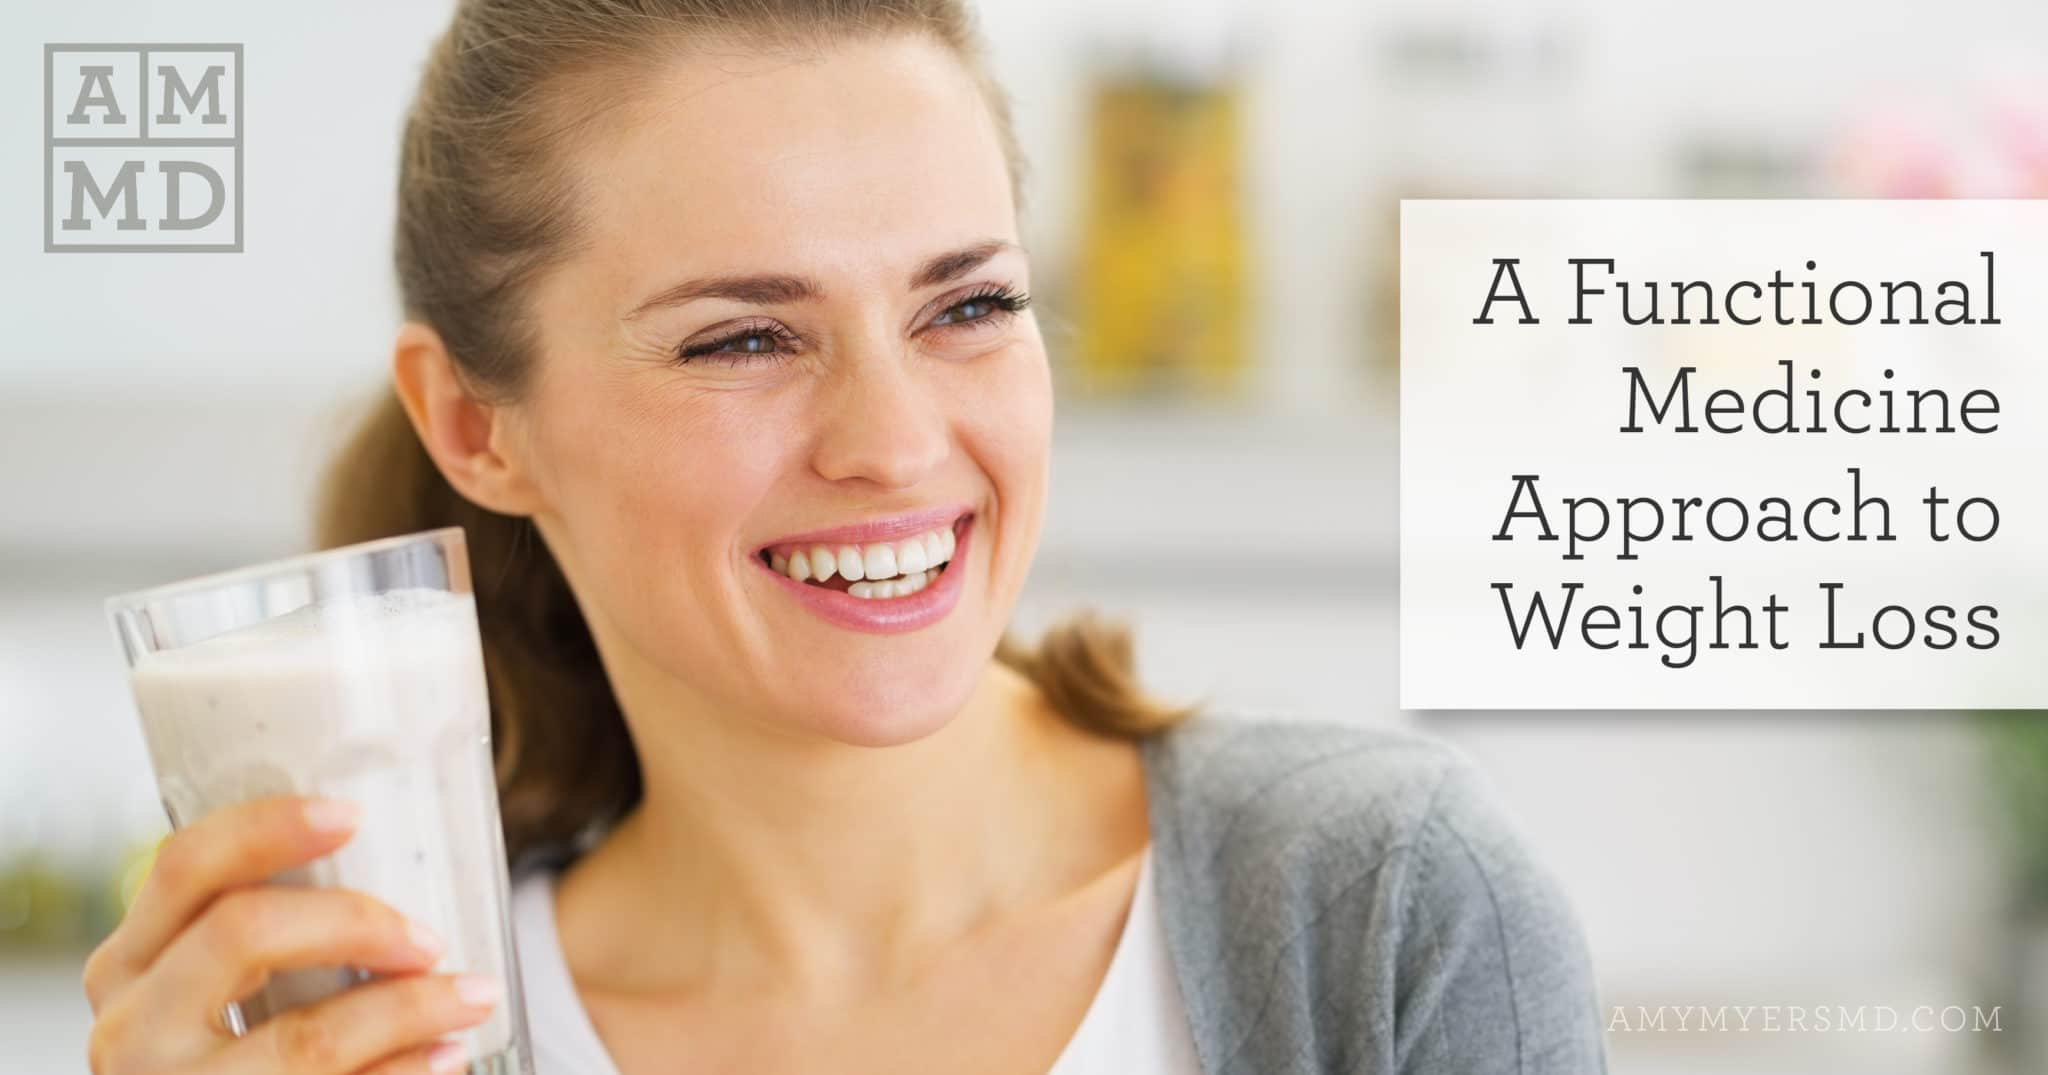 A Functional Medicine Approach to Weight Loss - A Woman Smiling - Featured Image - Amy Myers MD